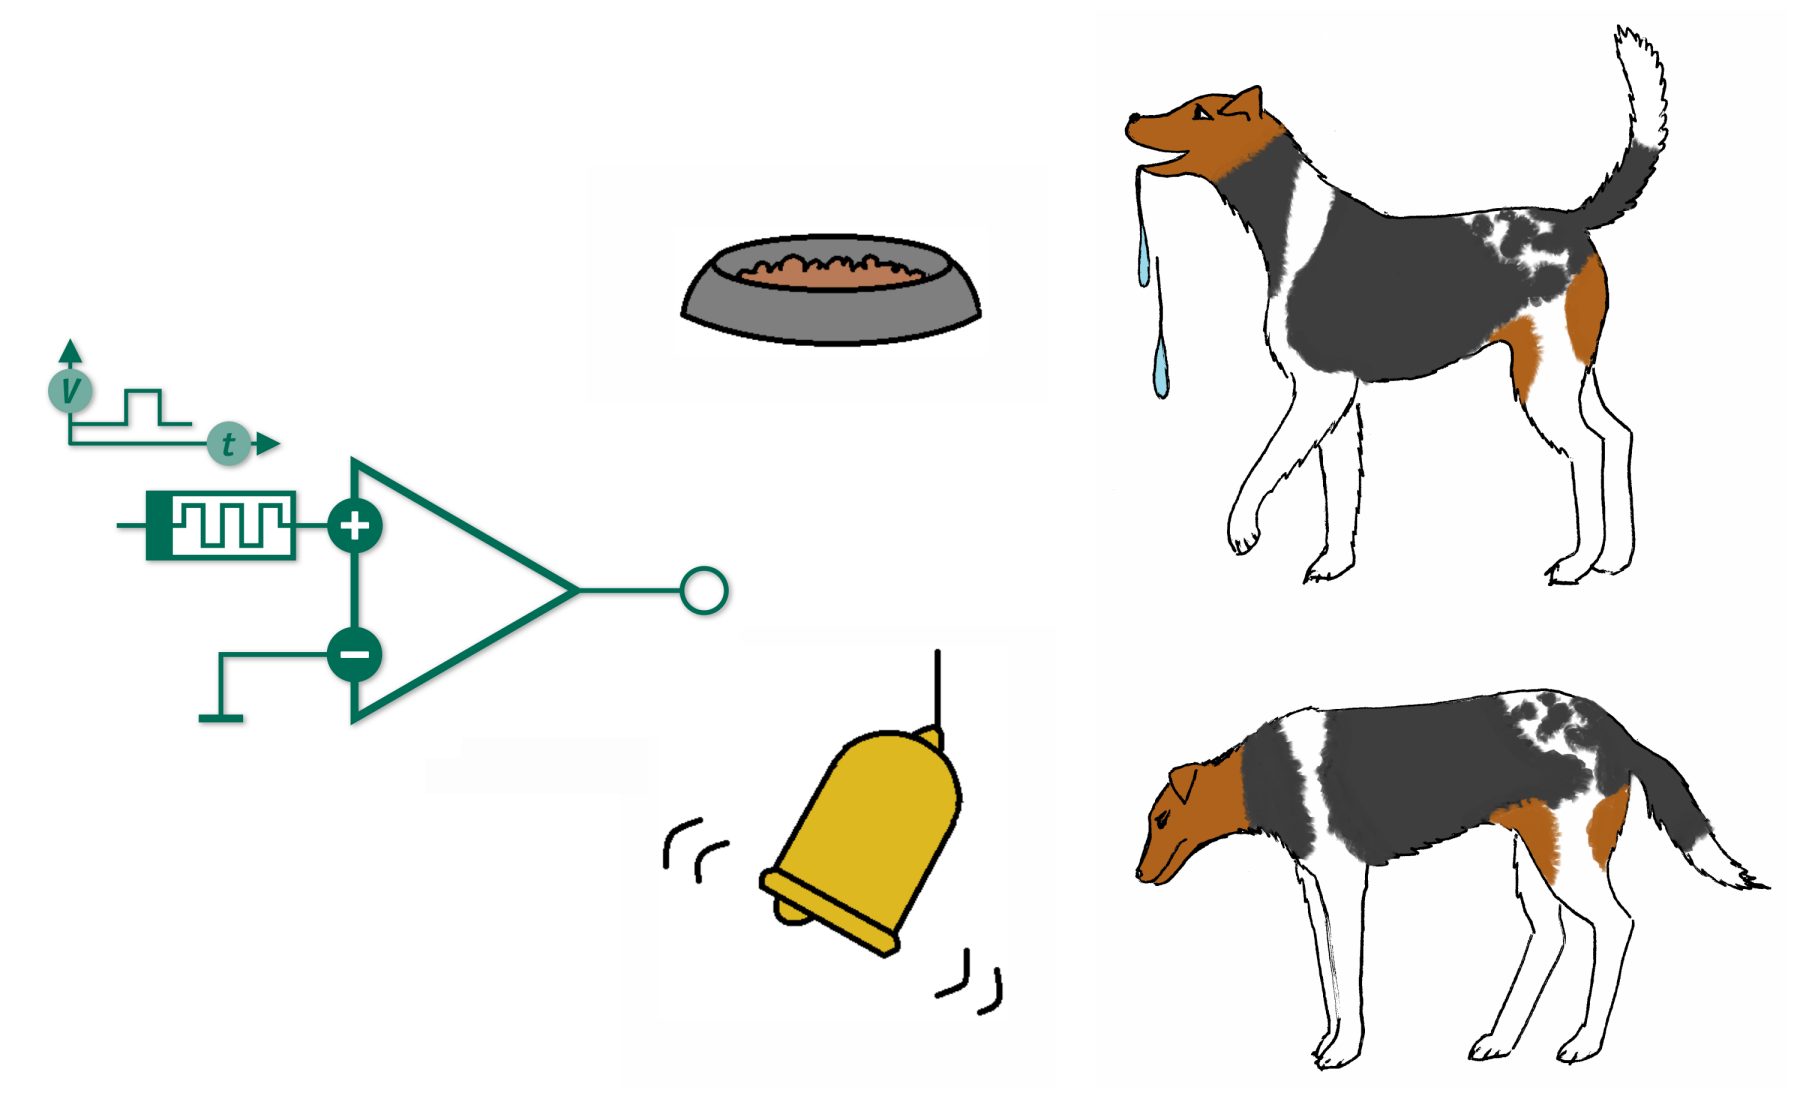 pavlovs dog How did pavlov's dog experiments lead to one of the greatest discoveries in psychology learn more about pavlov's dogs and classical conditioning.